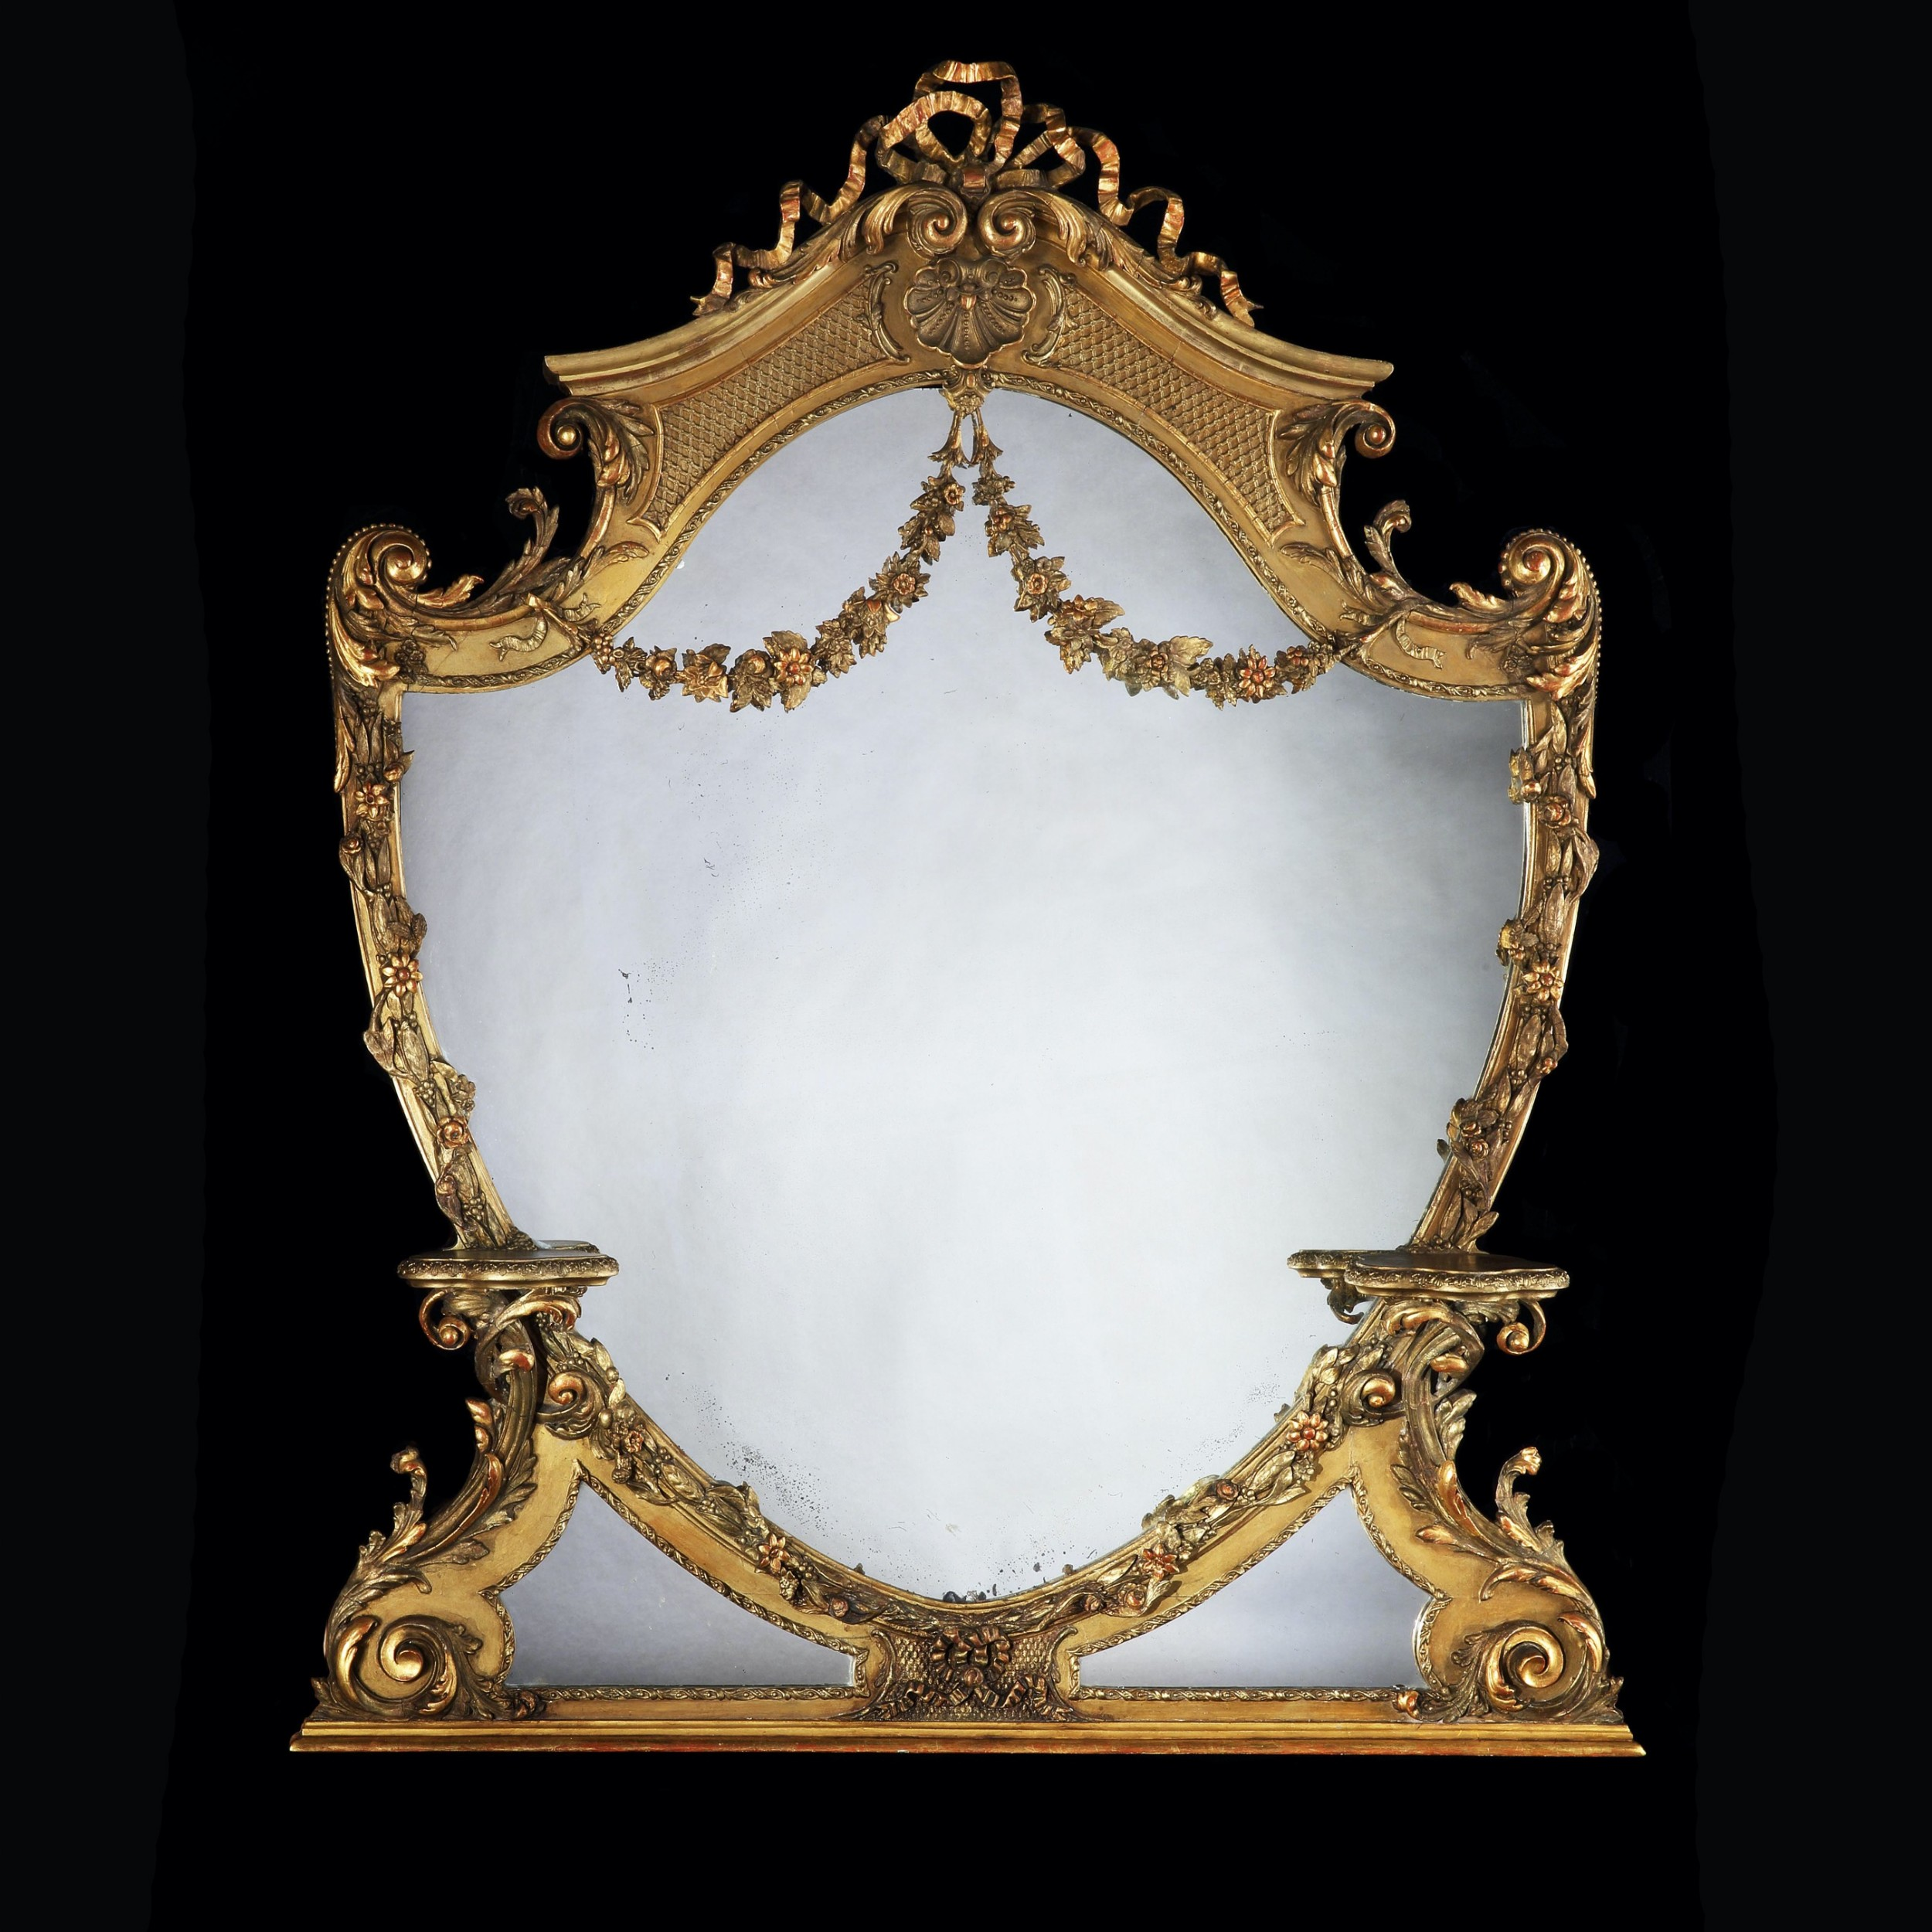 large 19th century victorian giltwood and gesso overmantel mirror of cartouche shaped form